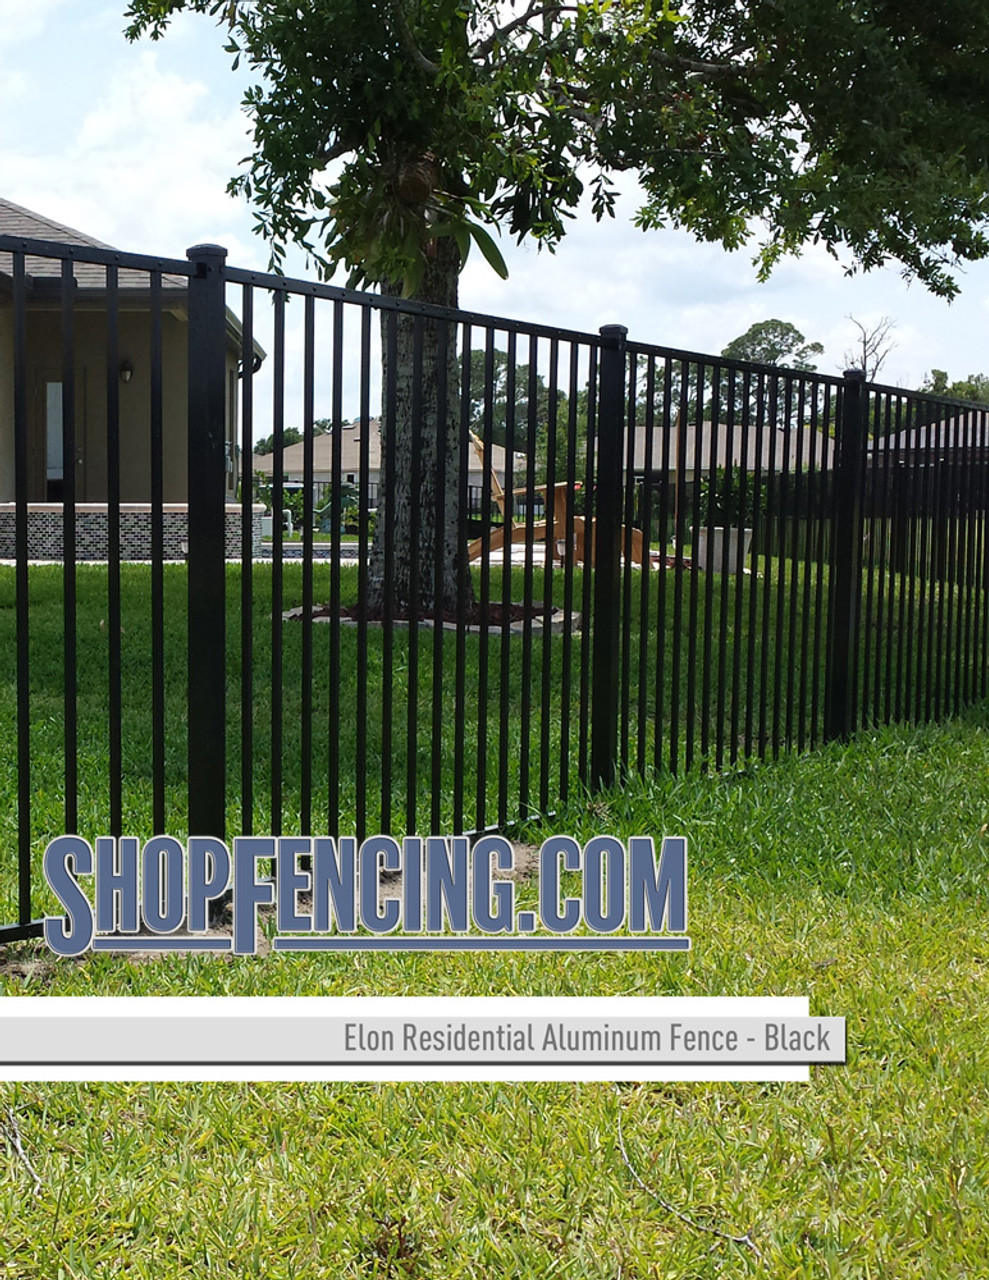 Elon Residential Aluminum Fence Section - Two Rail Smooth Top